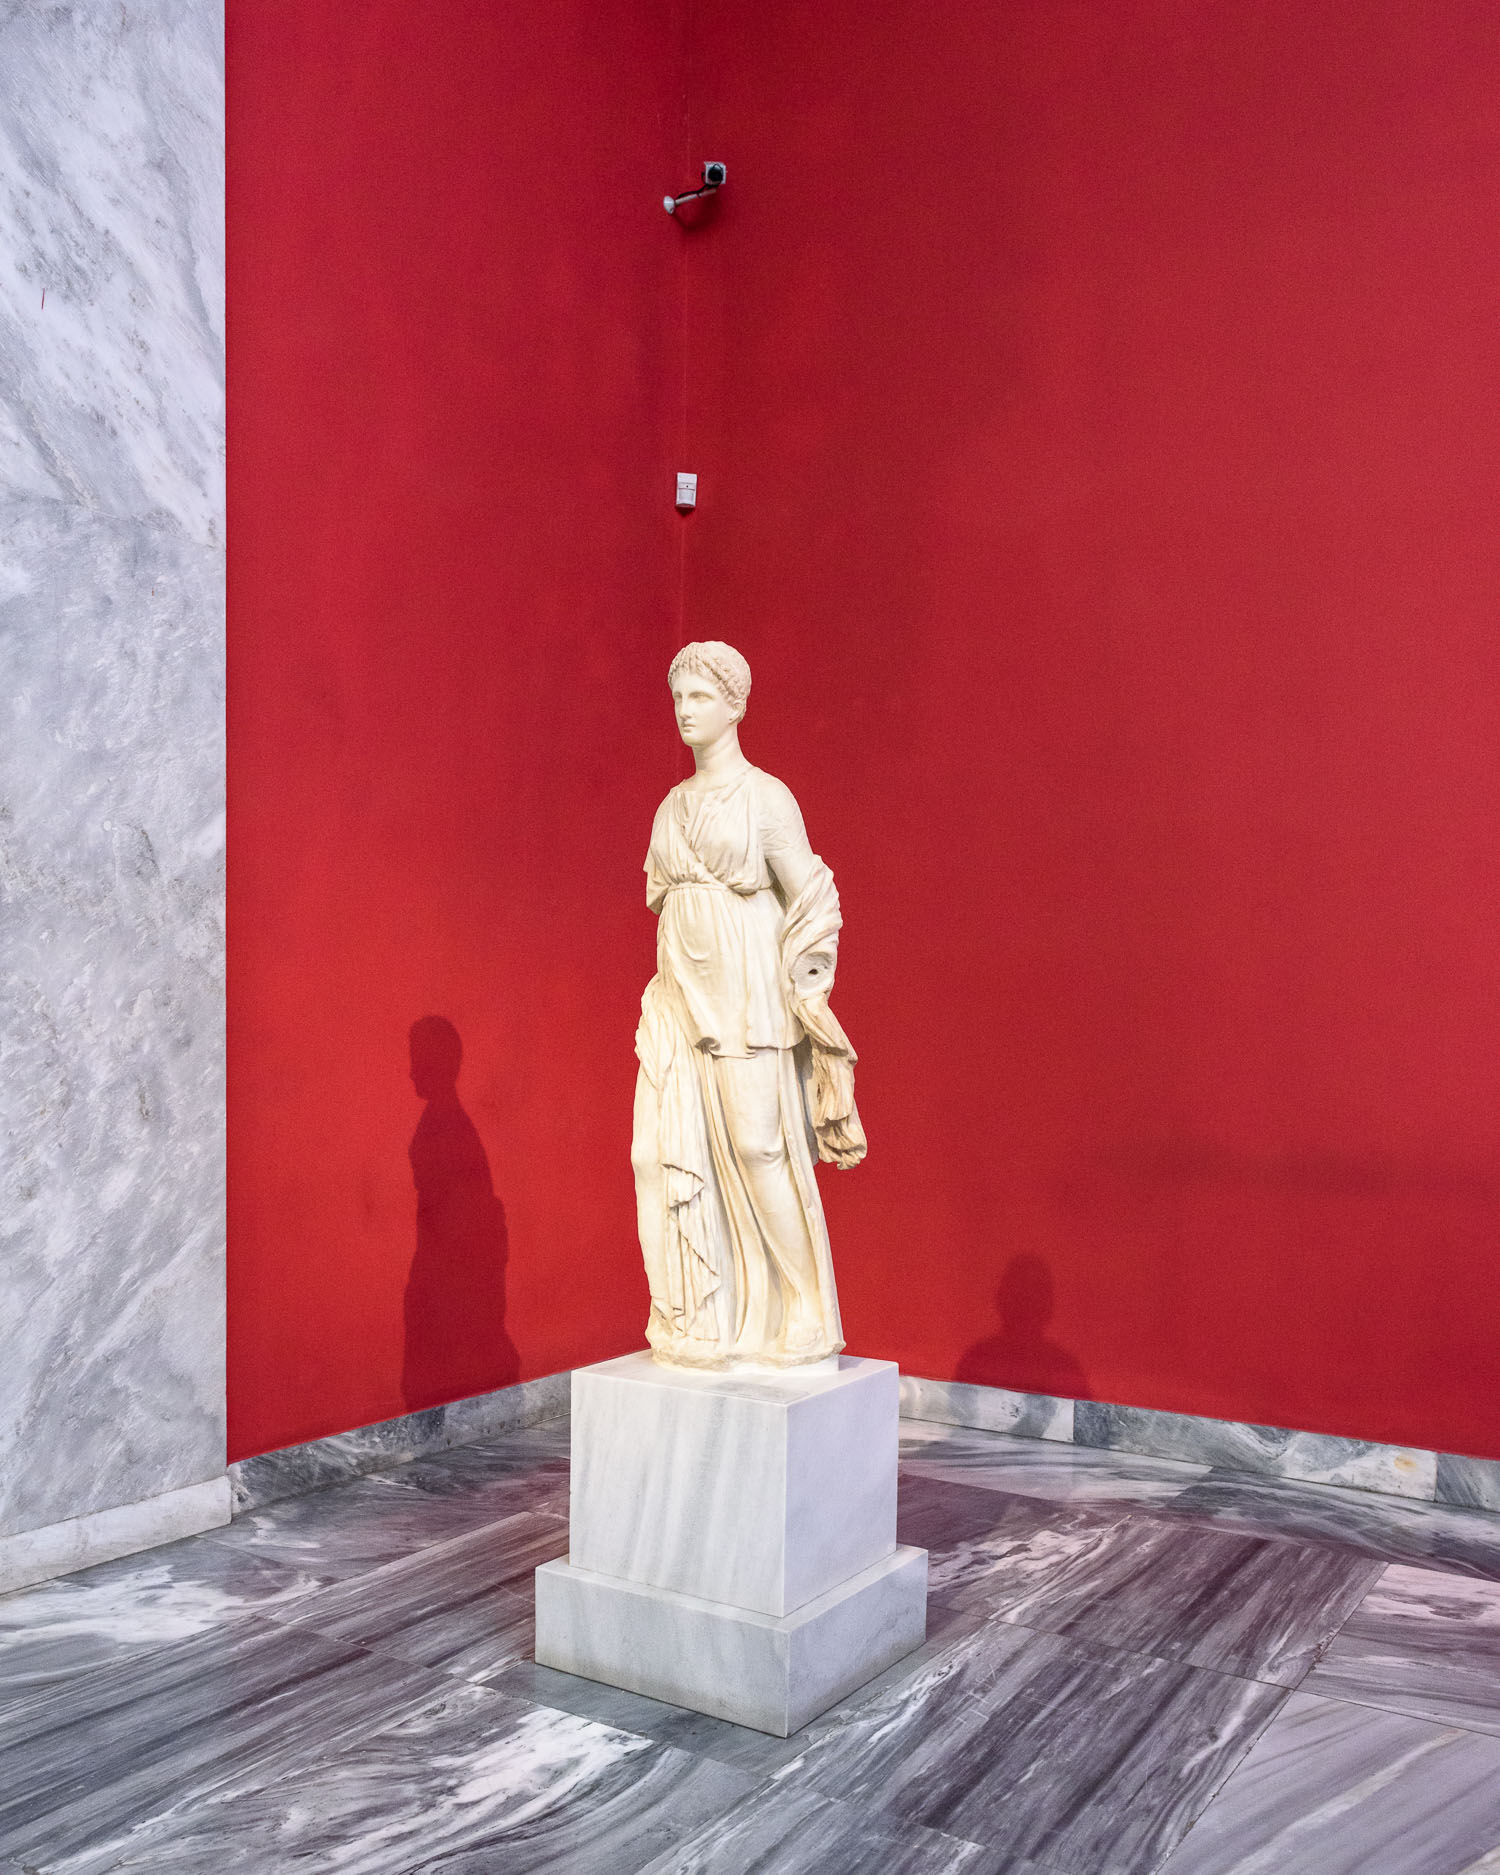 The National Archeolgical Museum of Athens, founded in 1829